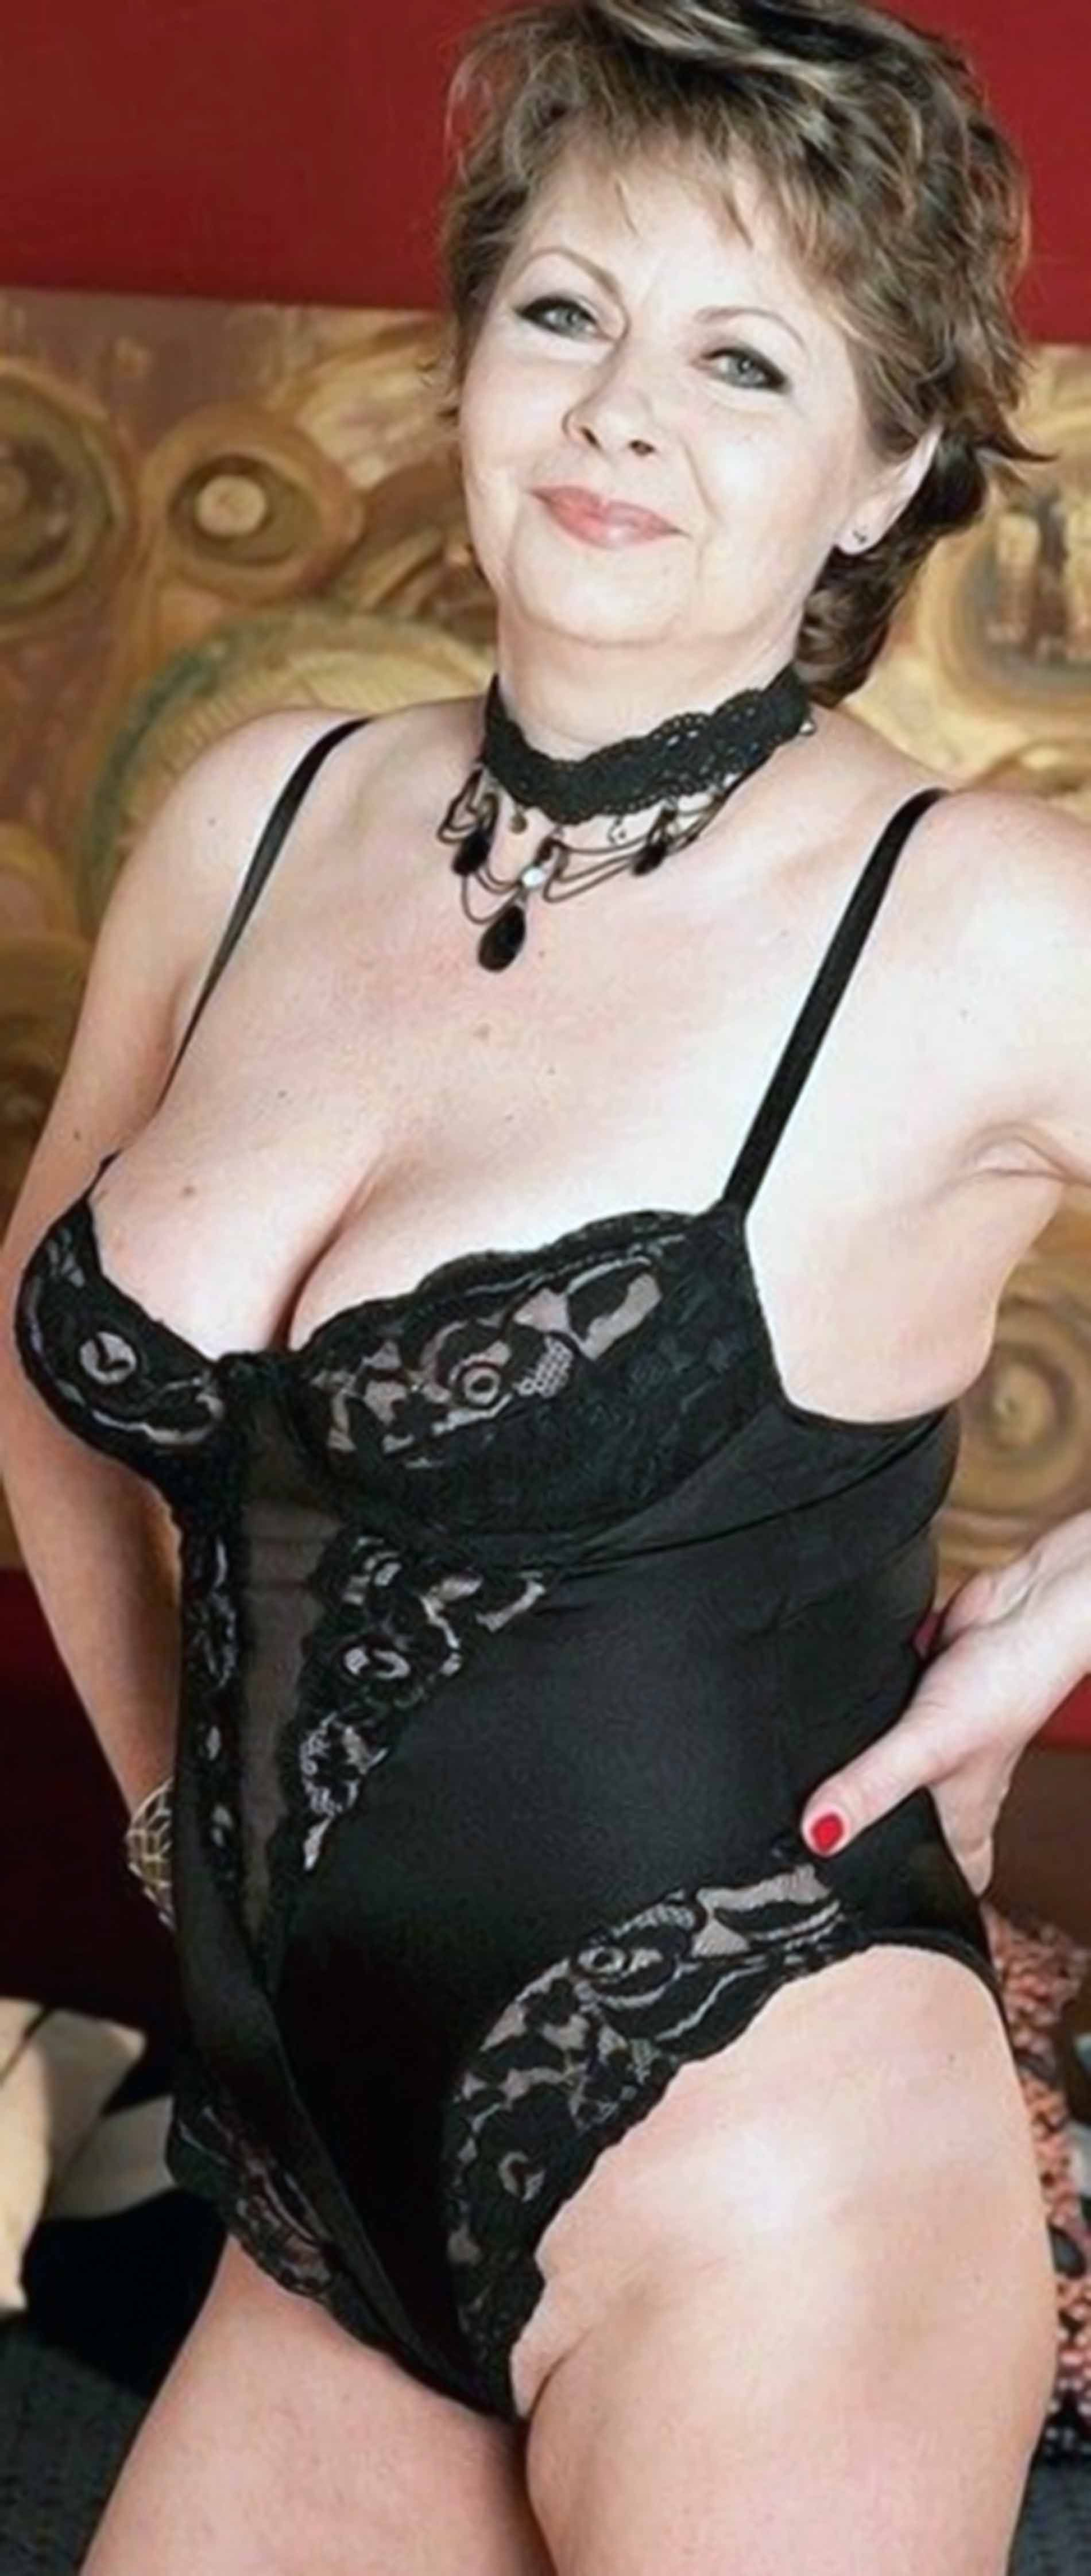 Found erotic mature video preview pity, that